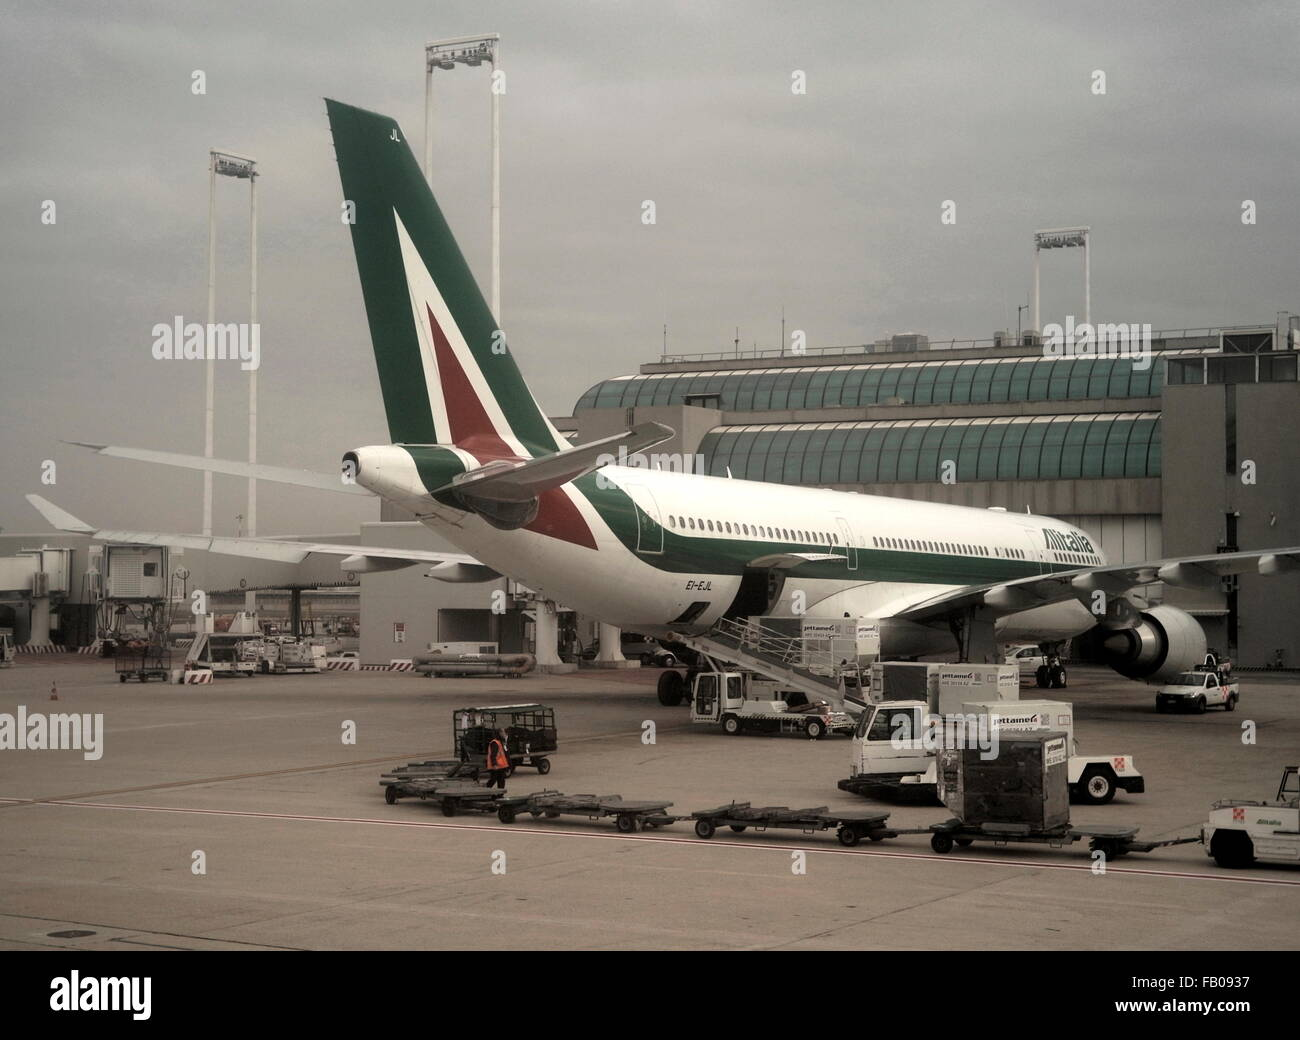 AJAXNETPHOTO. 3RD DECEMBER, 2015. FIUMICINO, ROME, ITALY. - ALITALIA AIRBUS - AN A330_202 AIRBUS PASSENGER JET LOADING - Stock Image